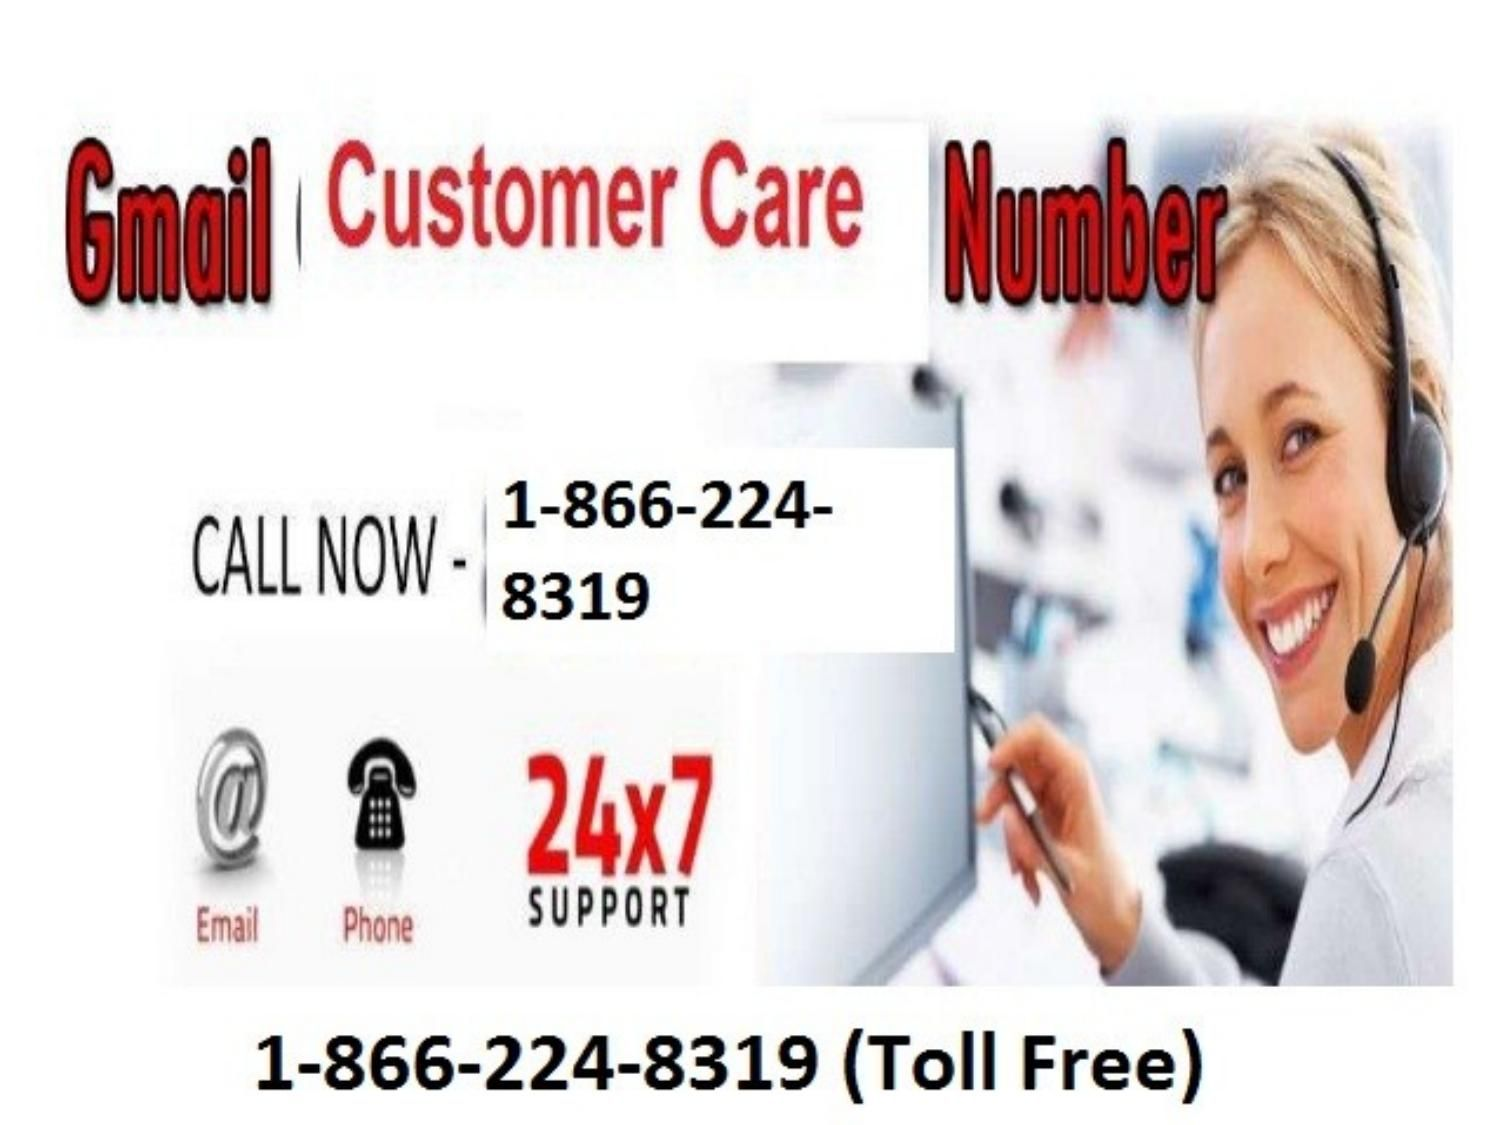 Call on Gmail Customer Care 18662248319 TollFree